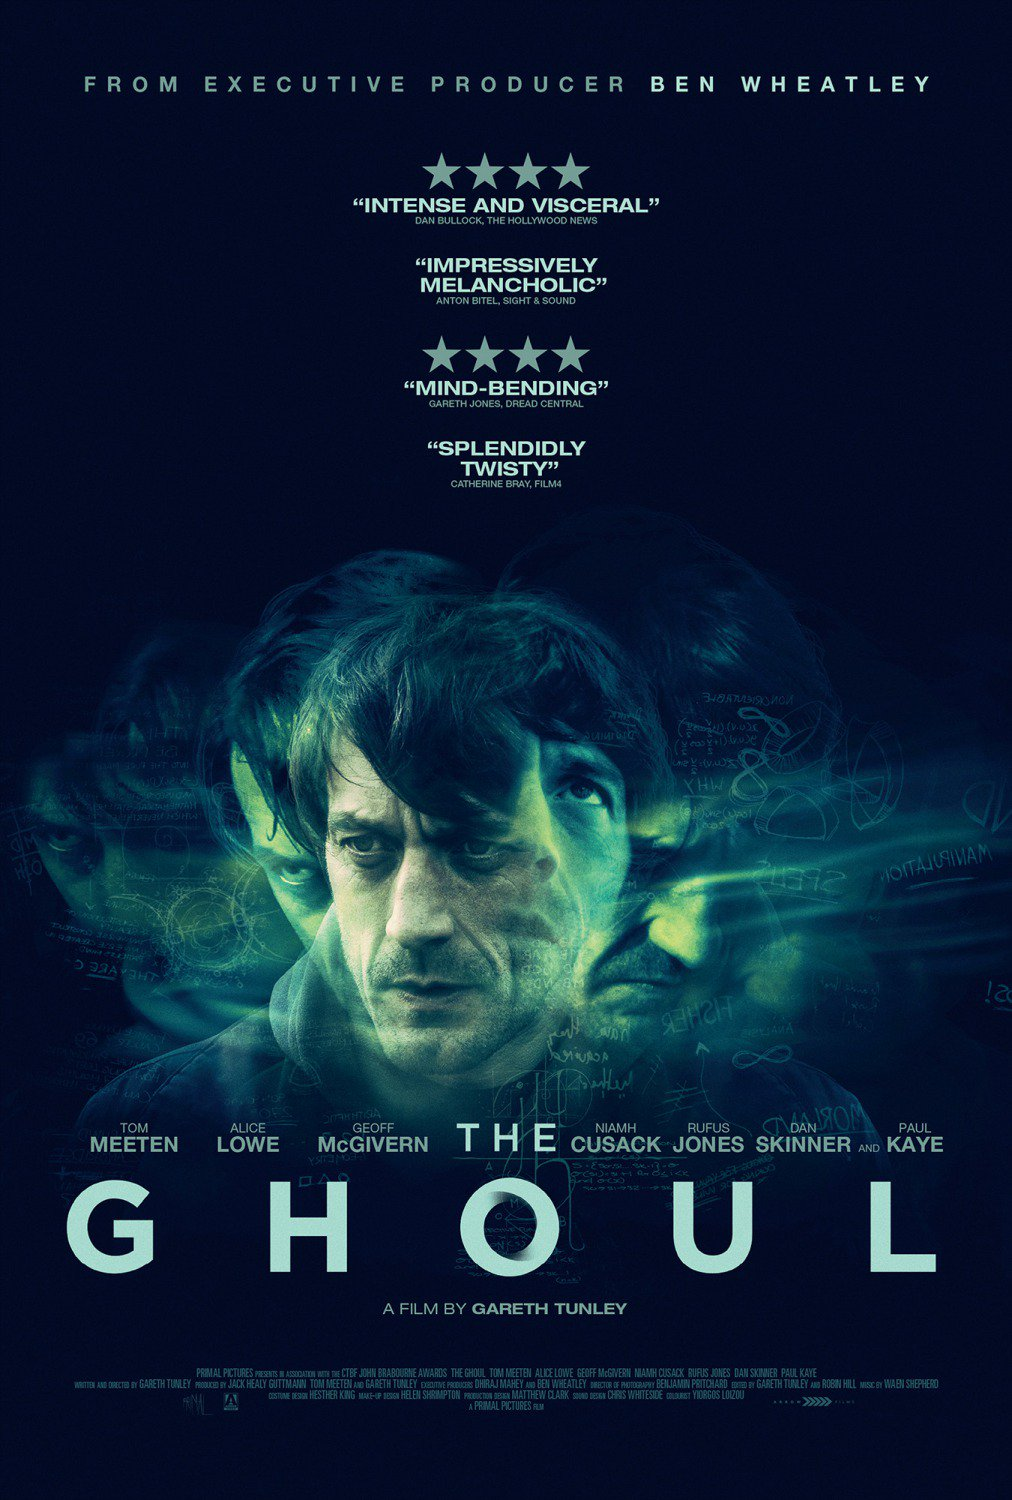 The Ghoul 2016 Hindi ORG Dual Audio 1080p BluRay ESubs 1.4GB Download